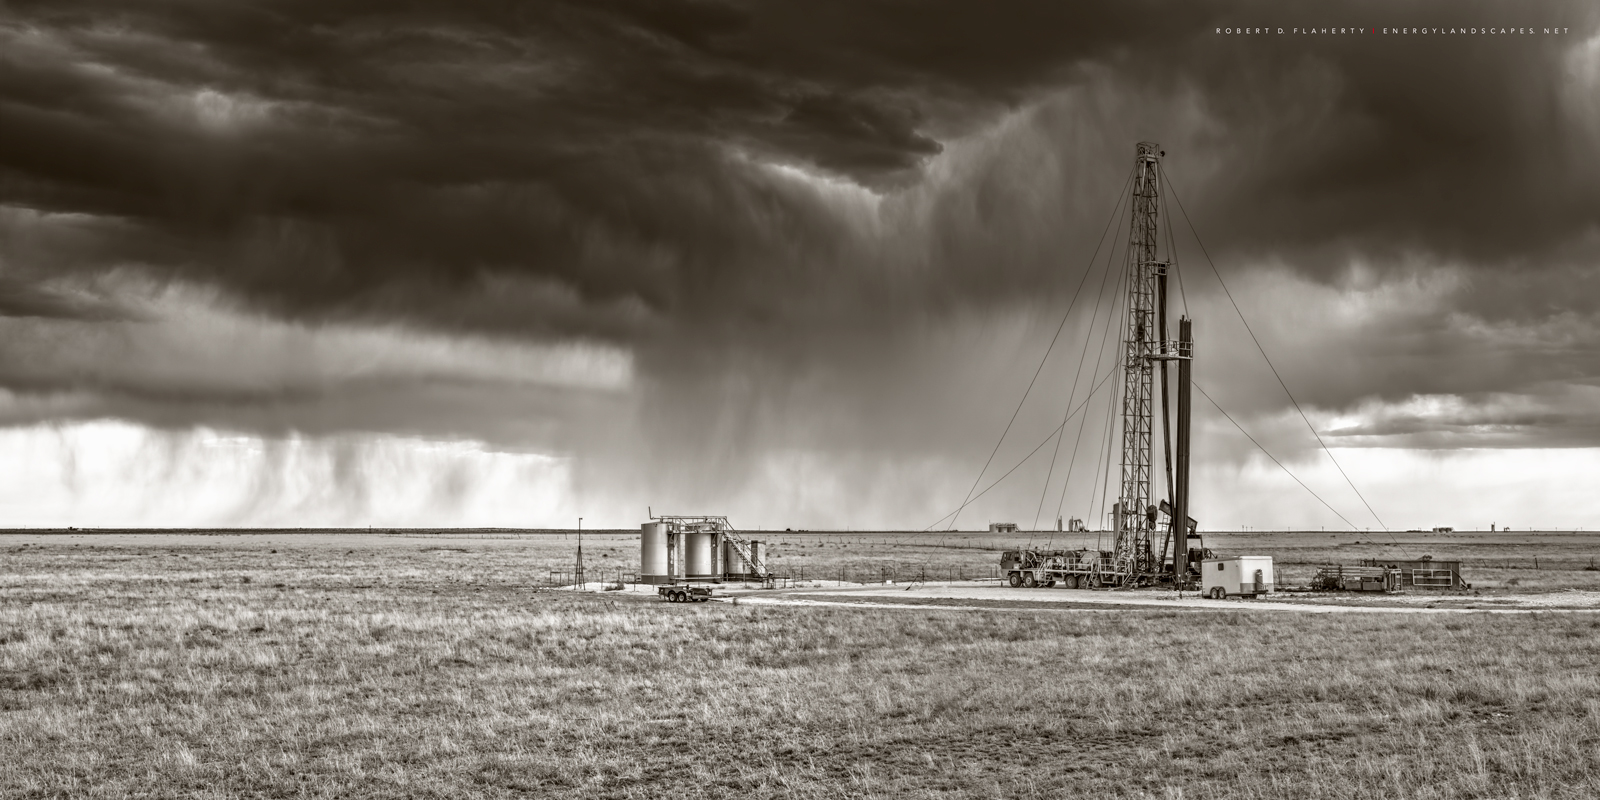 well services unit, work over rig, New Mexico, clouds, sky, black & white, sepia